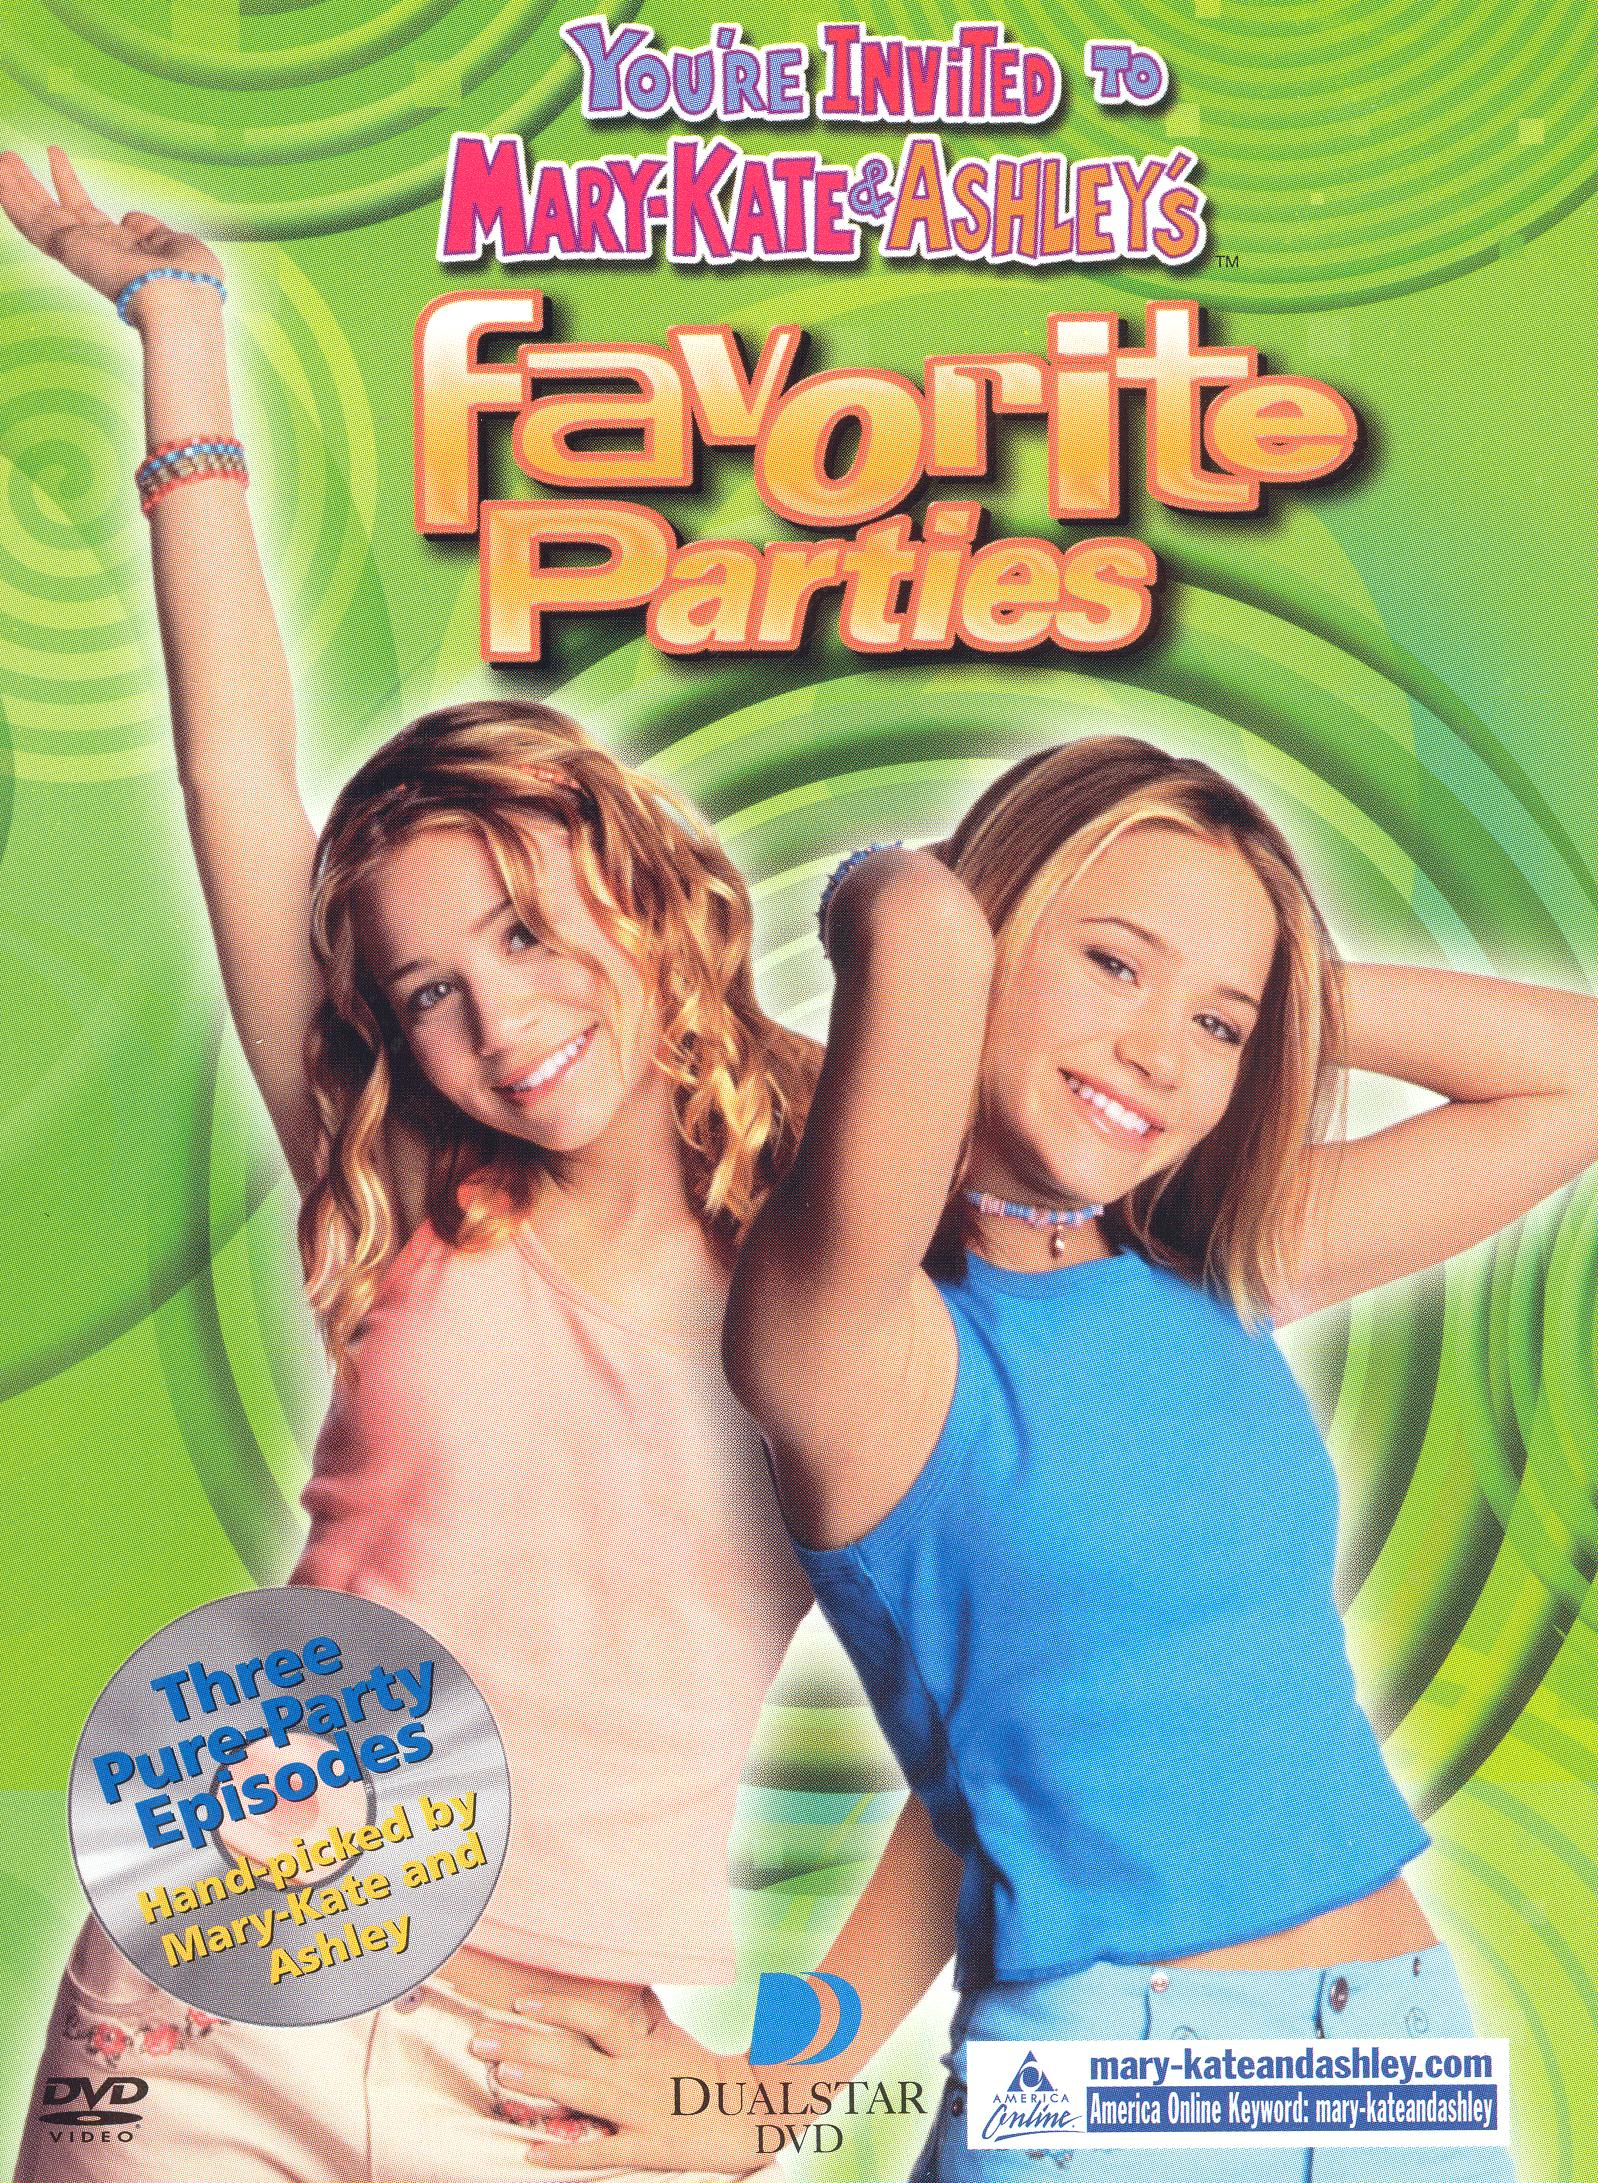 You're Invited to Mary-kate & Ashley's Favorite Parties